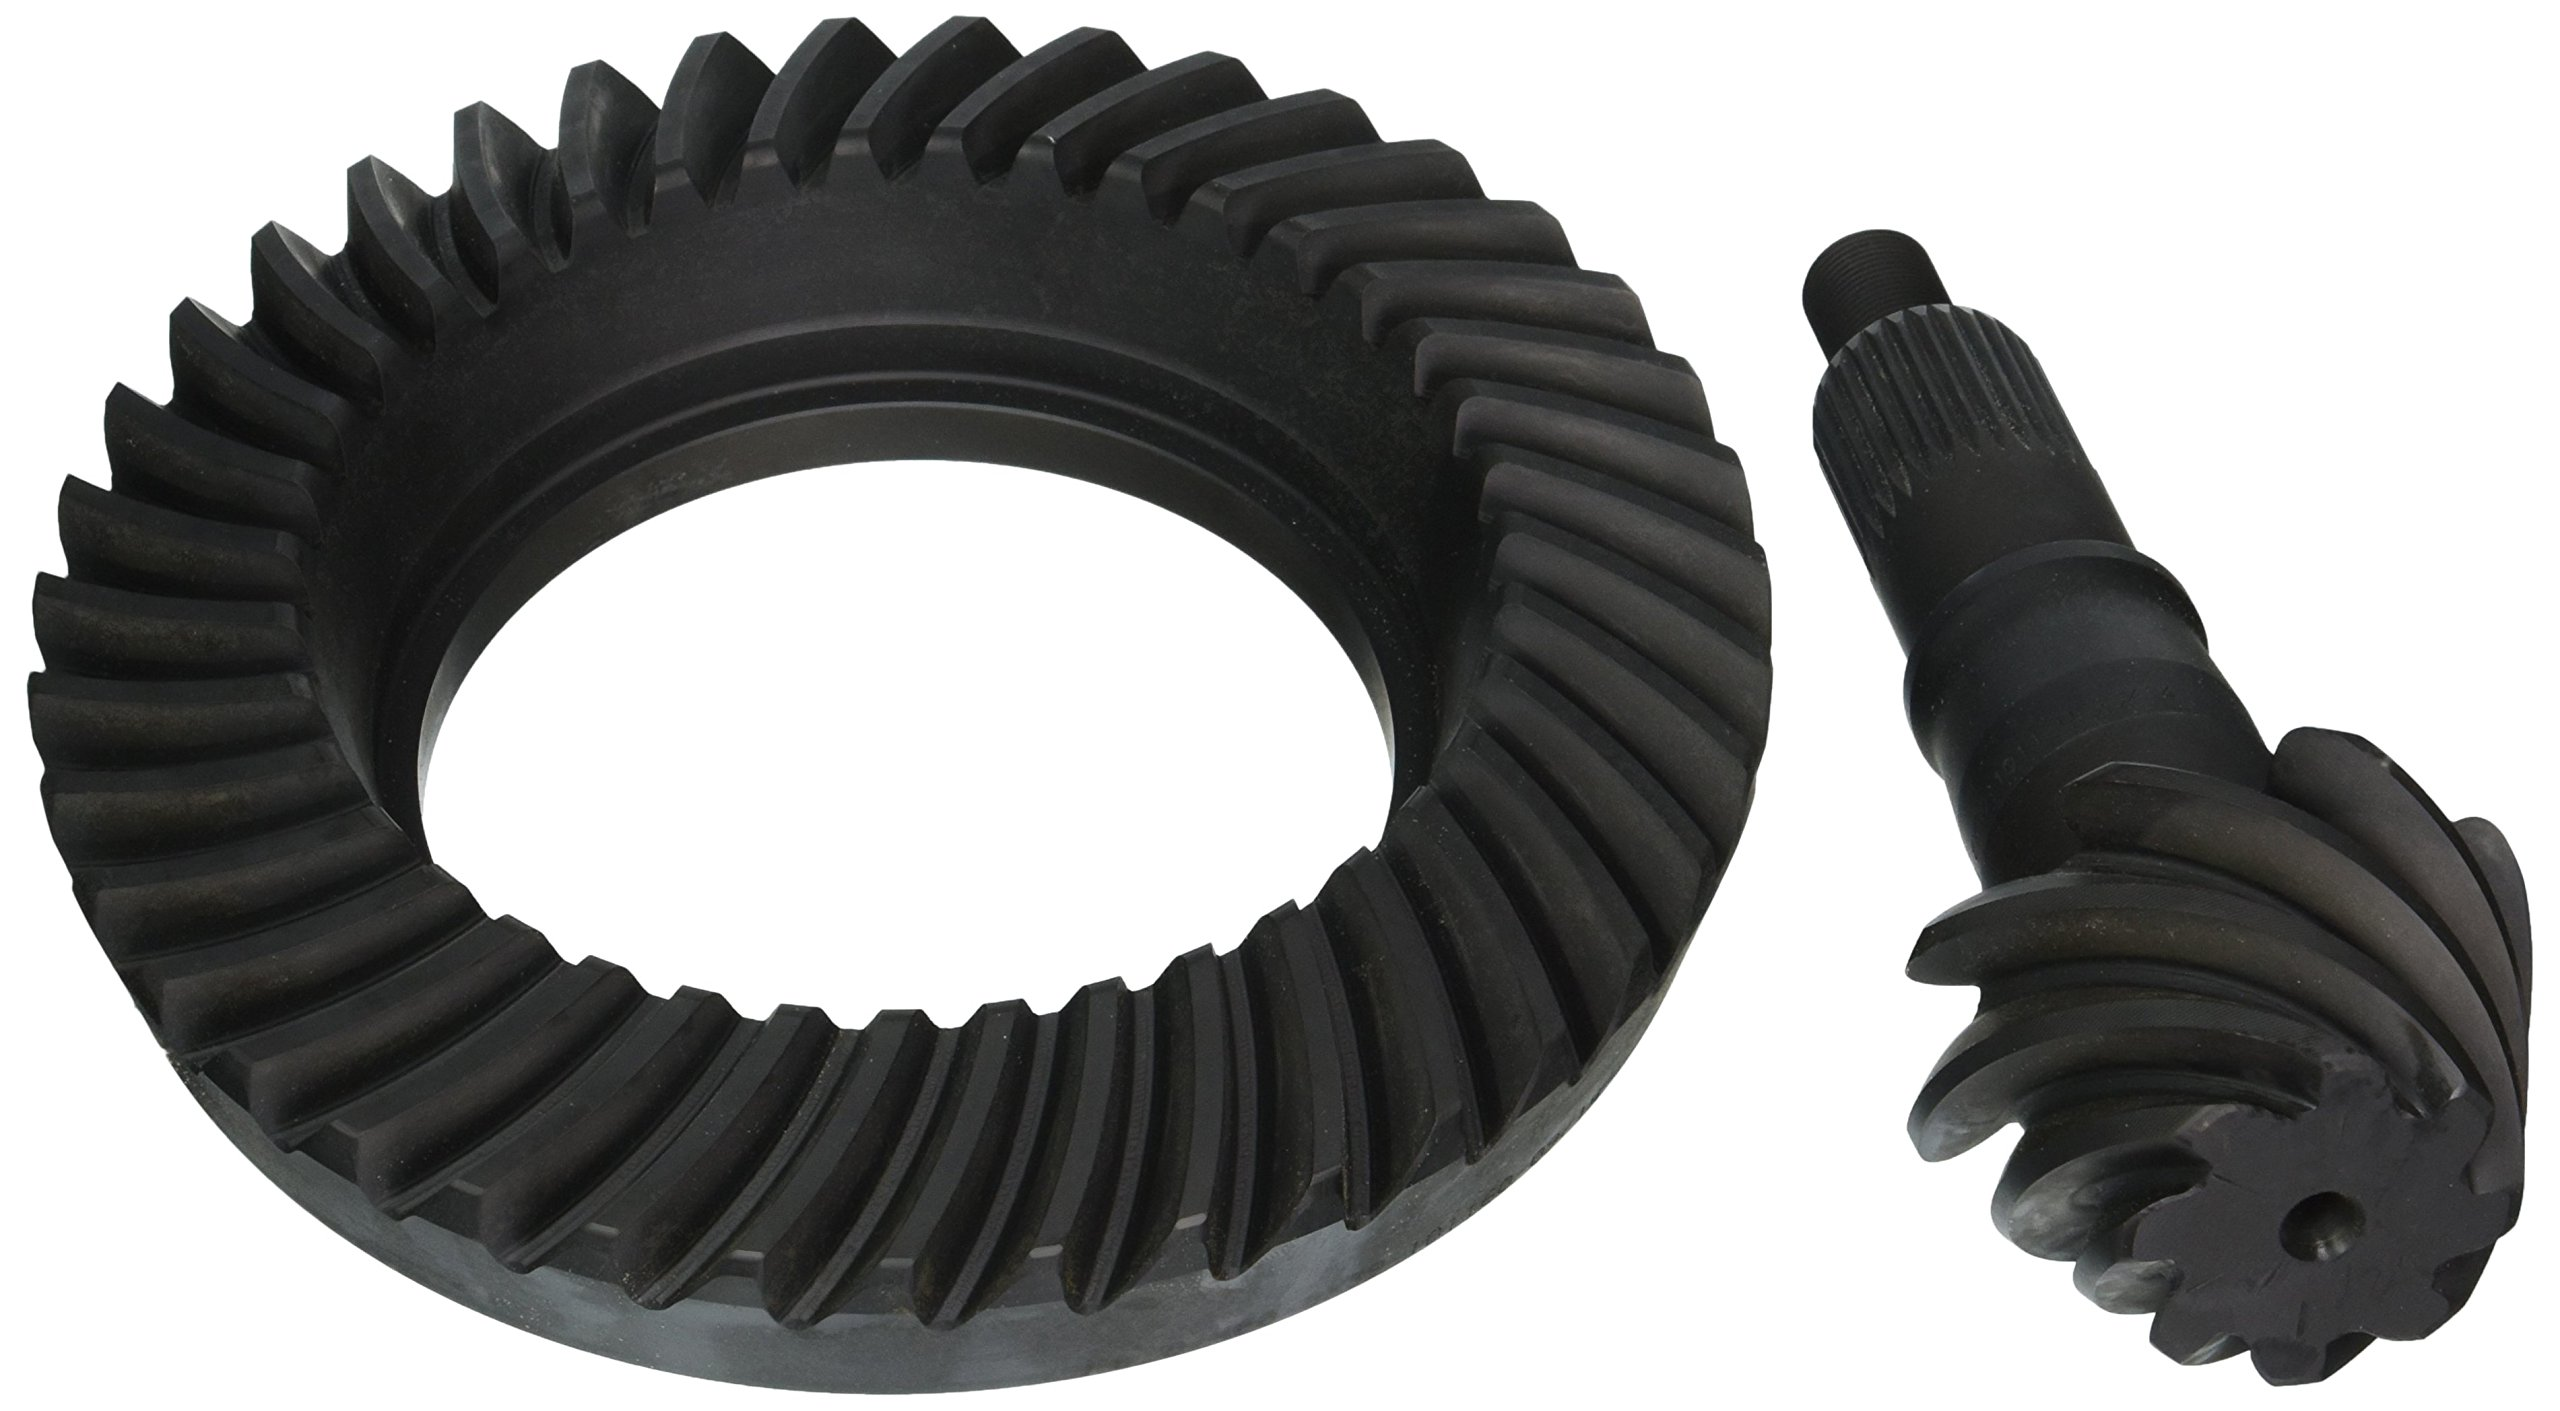 Motive Gear F888488 8.8'' Rear Ring and Pinion for Ford (4.88 Ratio) by Motive Gear